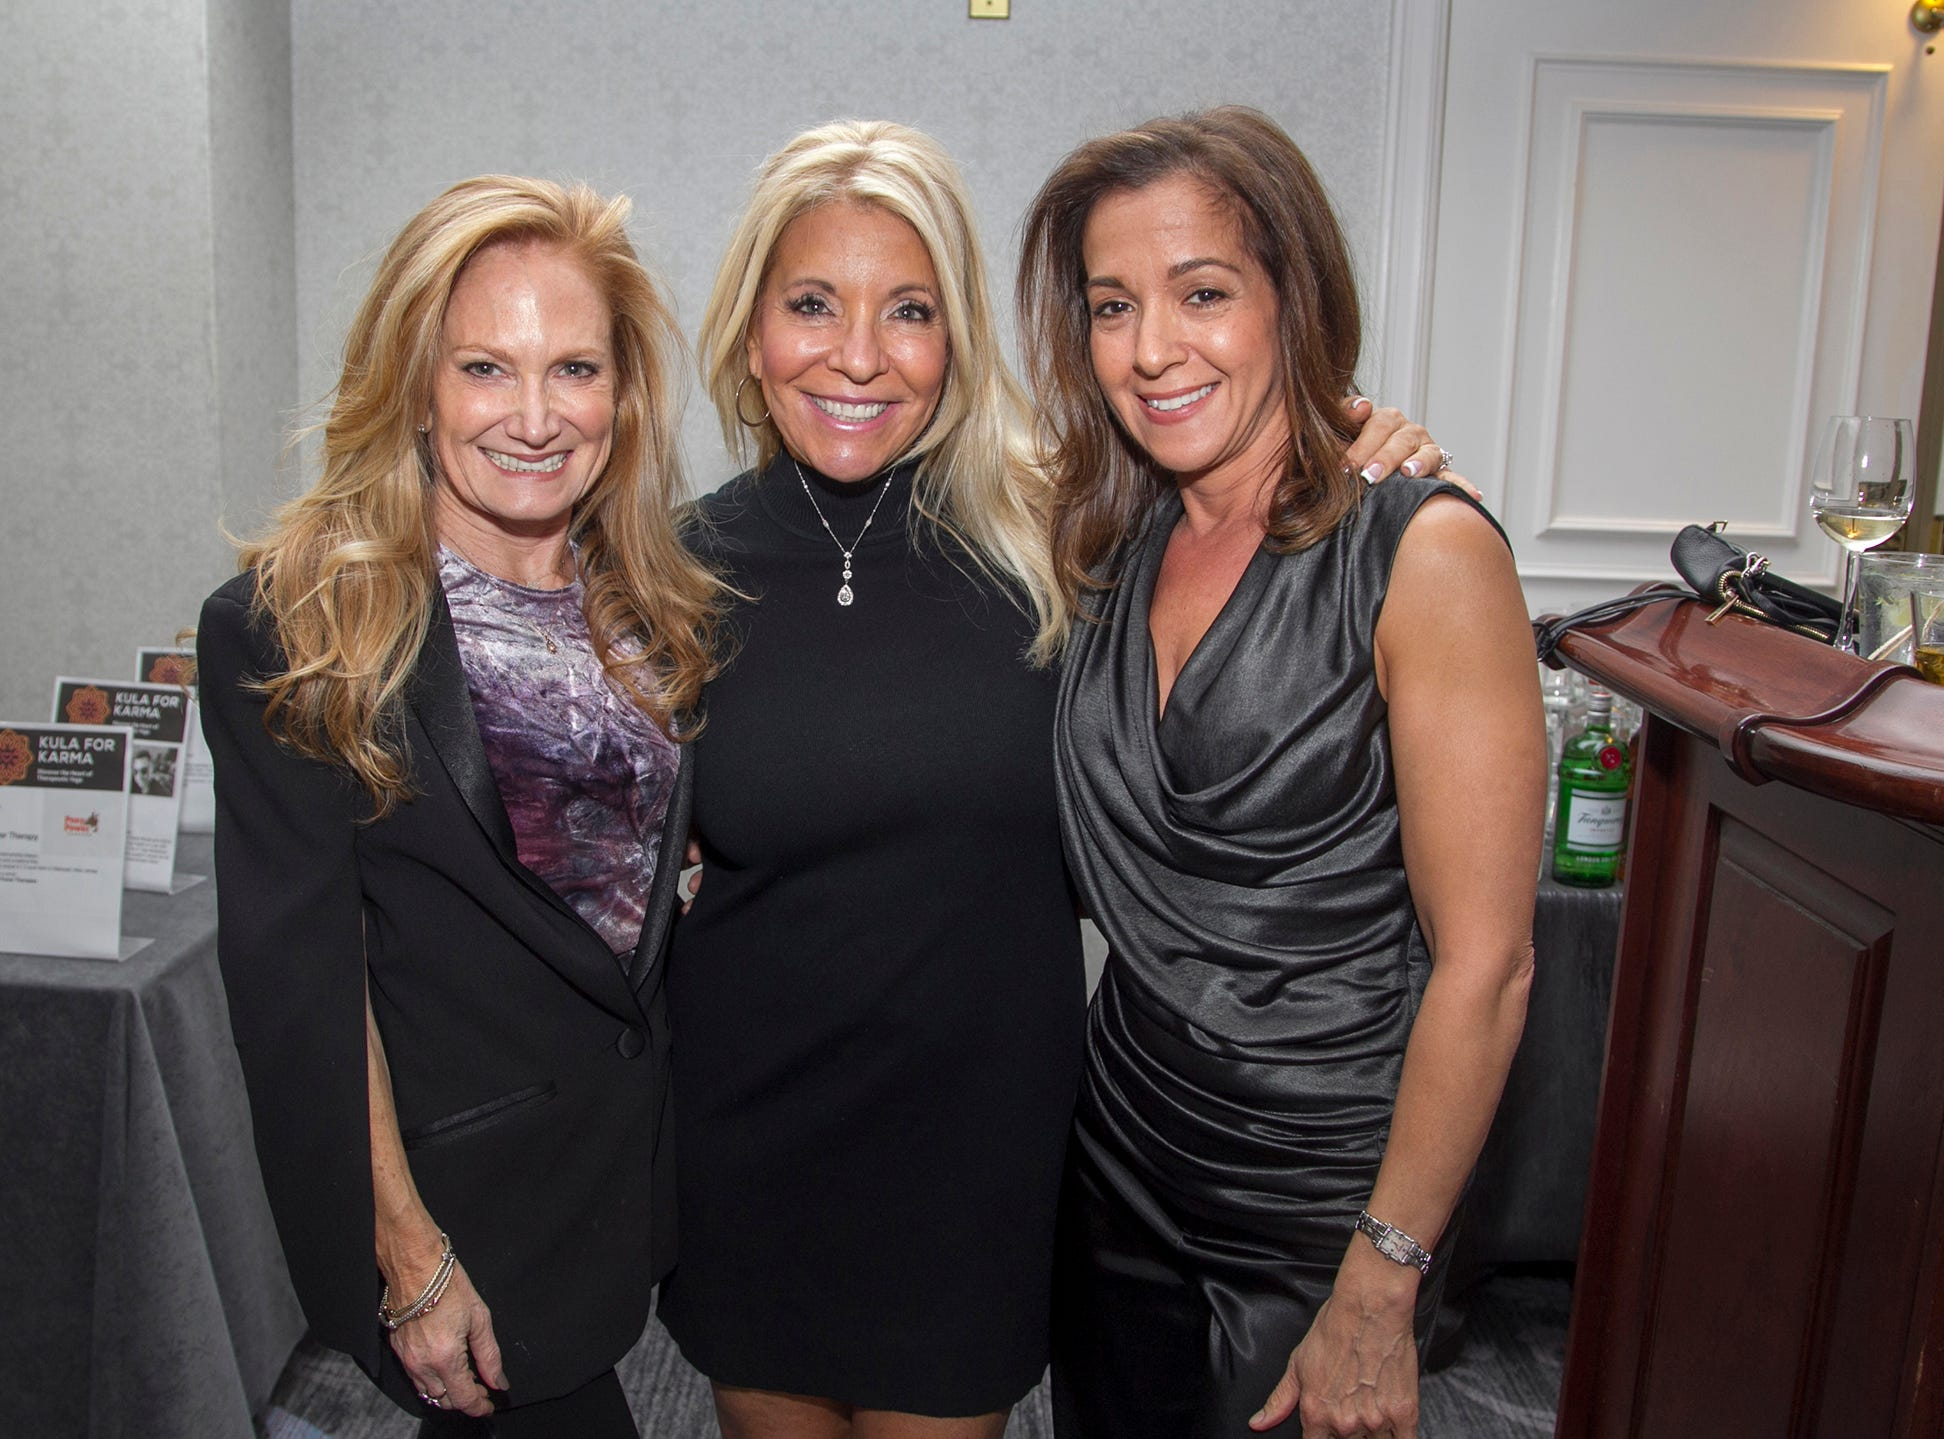 Stacy Lefkowitz, Susan Berman, Marcie Wald. Kula for Karma's 11th Anniversary gala at Pearl River Hilton. 11/05/2018